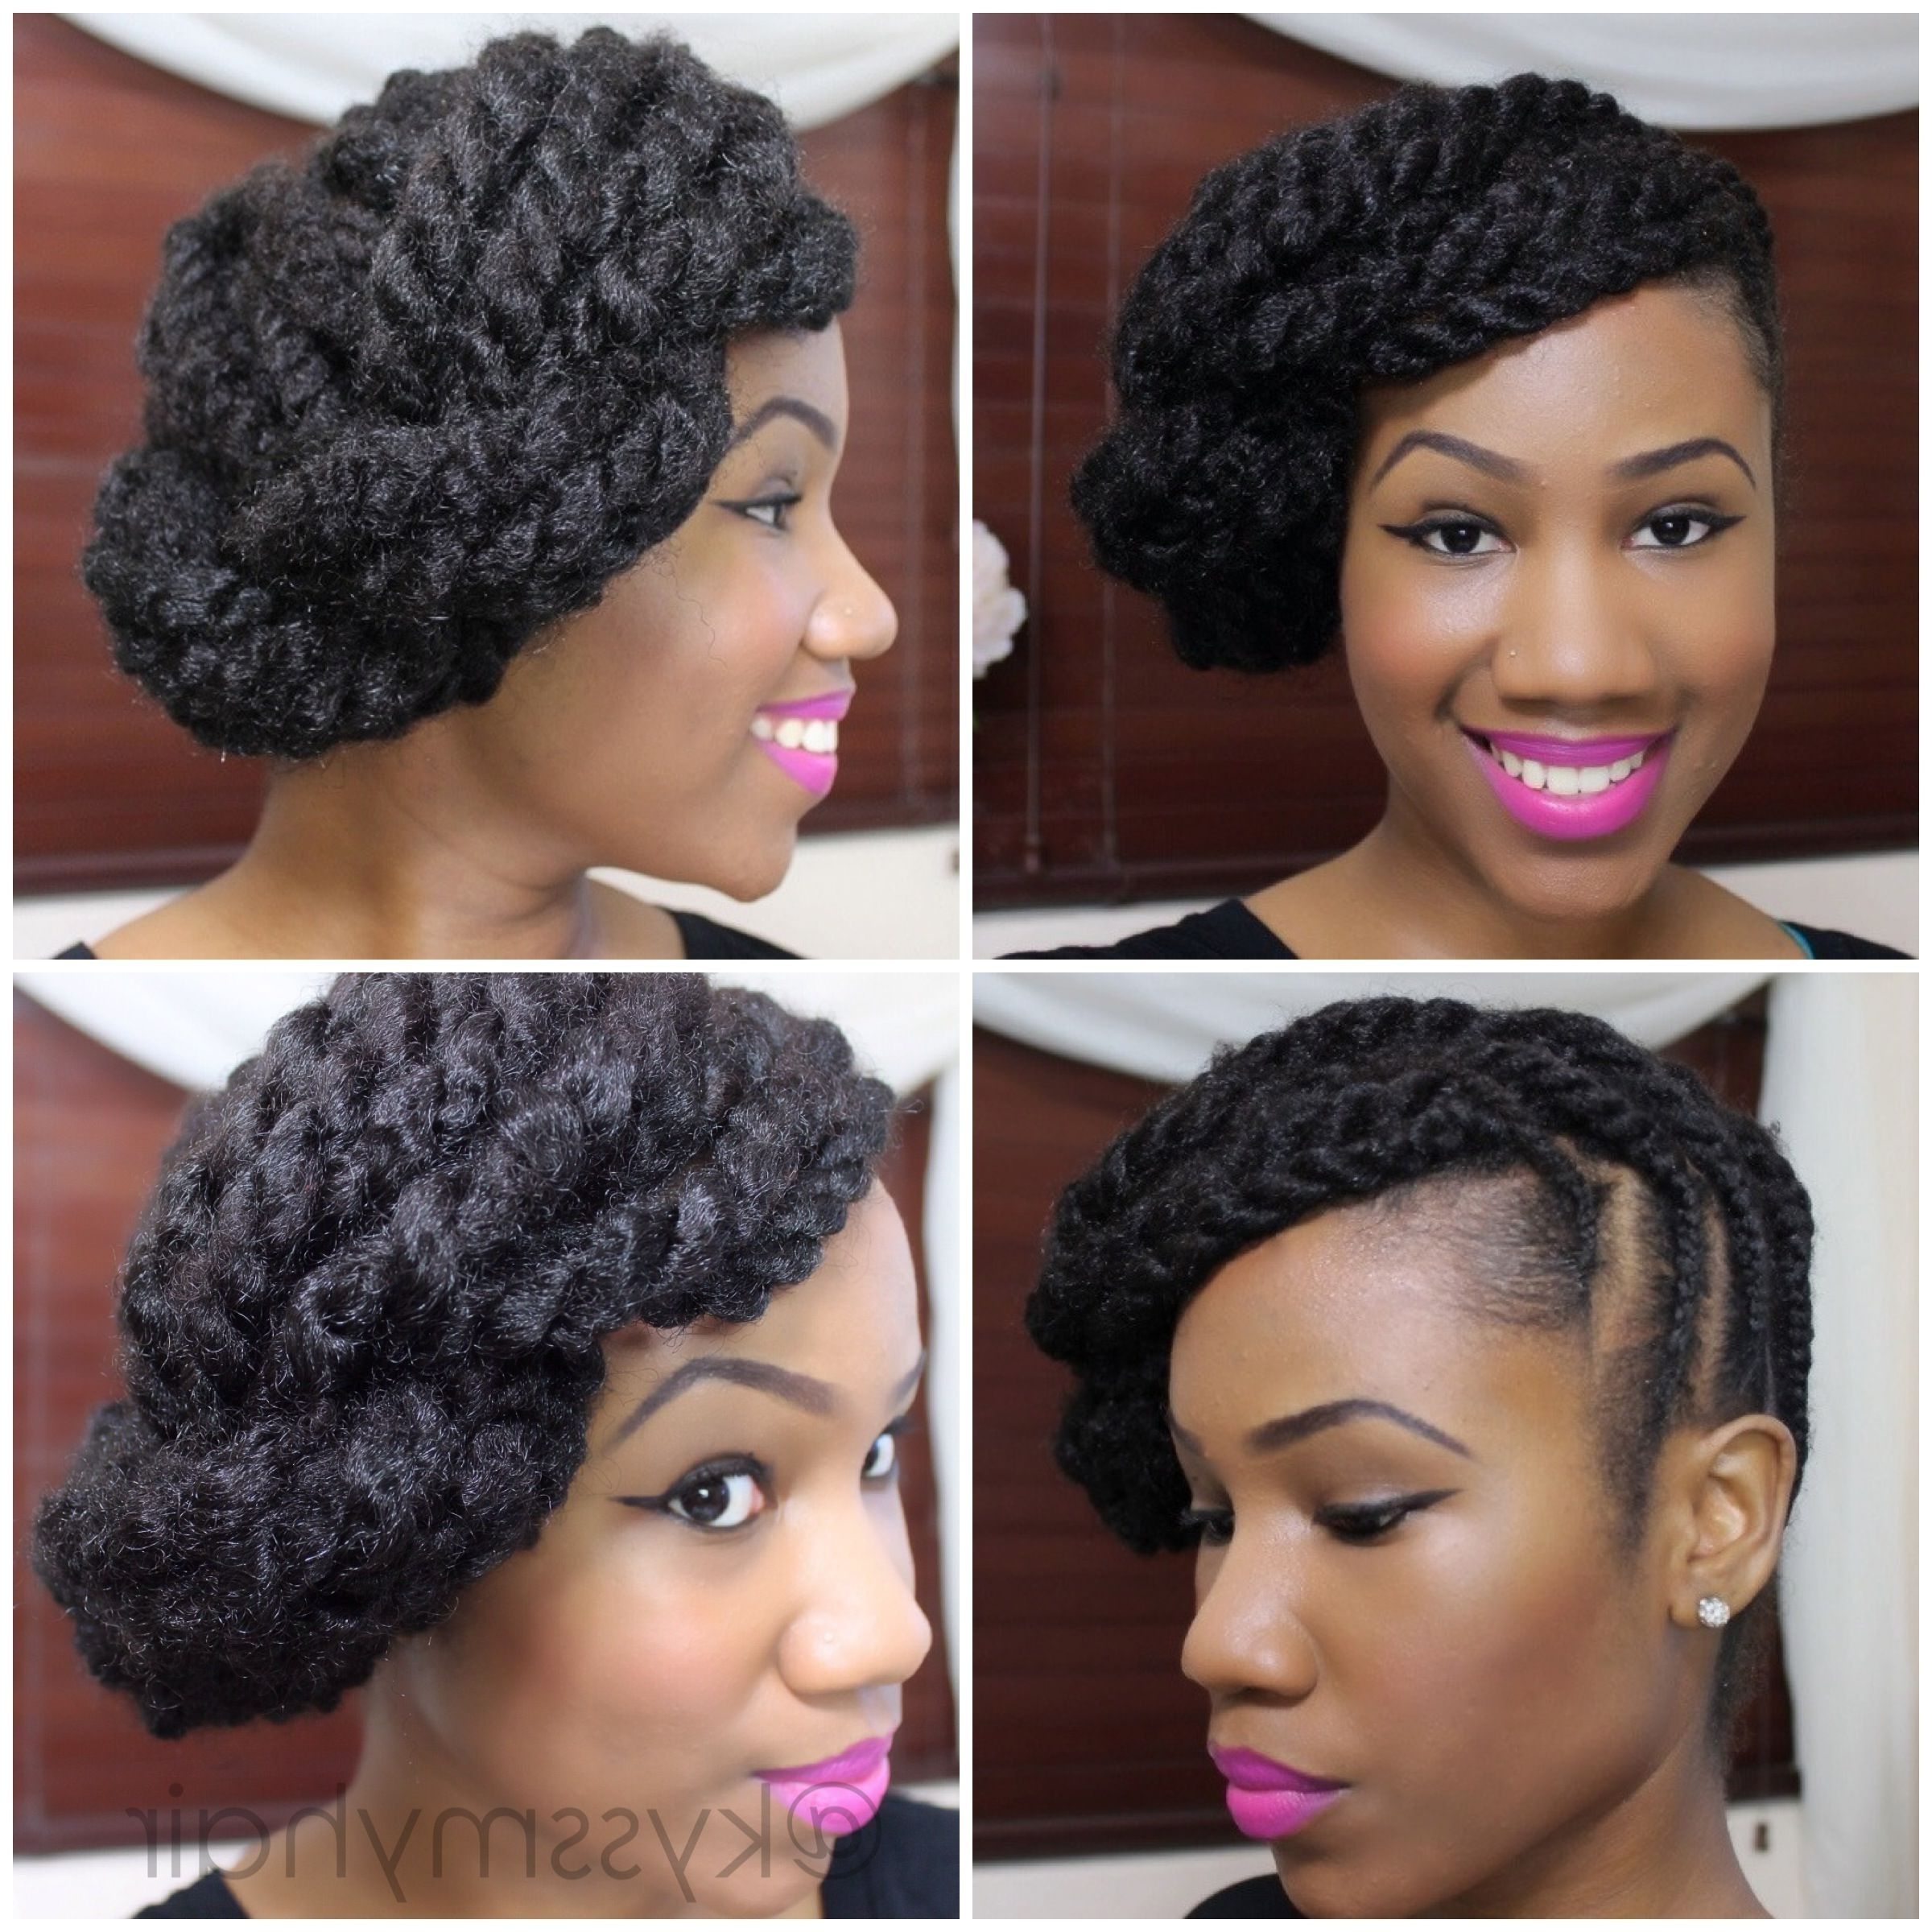 Braided Updo On Natural Hair Using Marley Hair | Kyss My Hair | Kyss Intended For Braided Updo Hairstyles With Extensions (View 8 of 15)